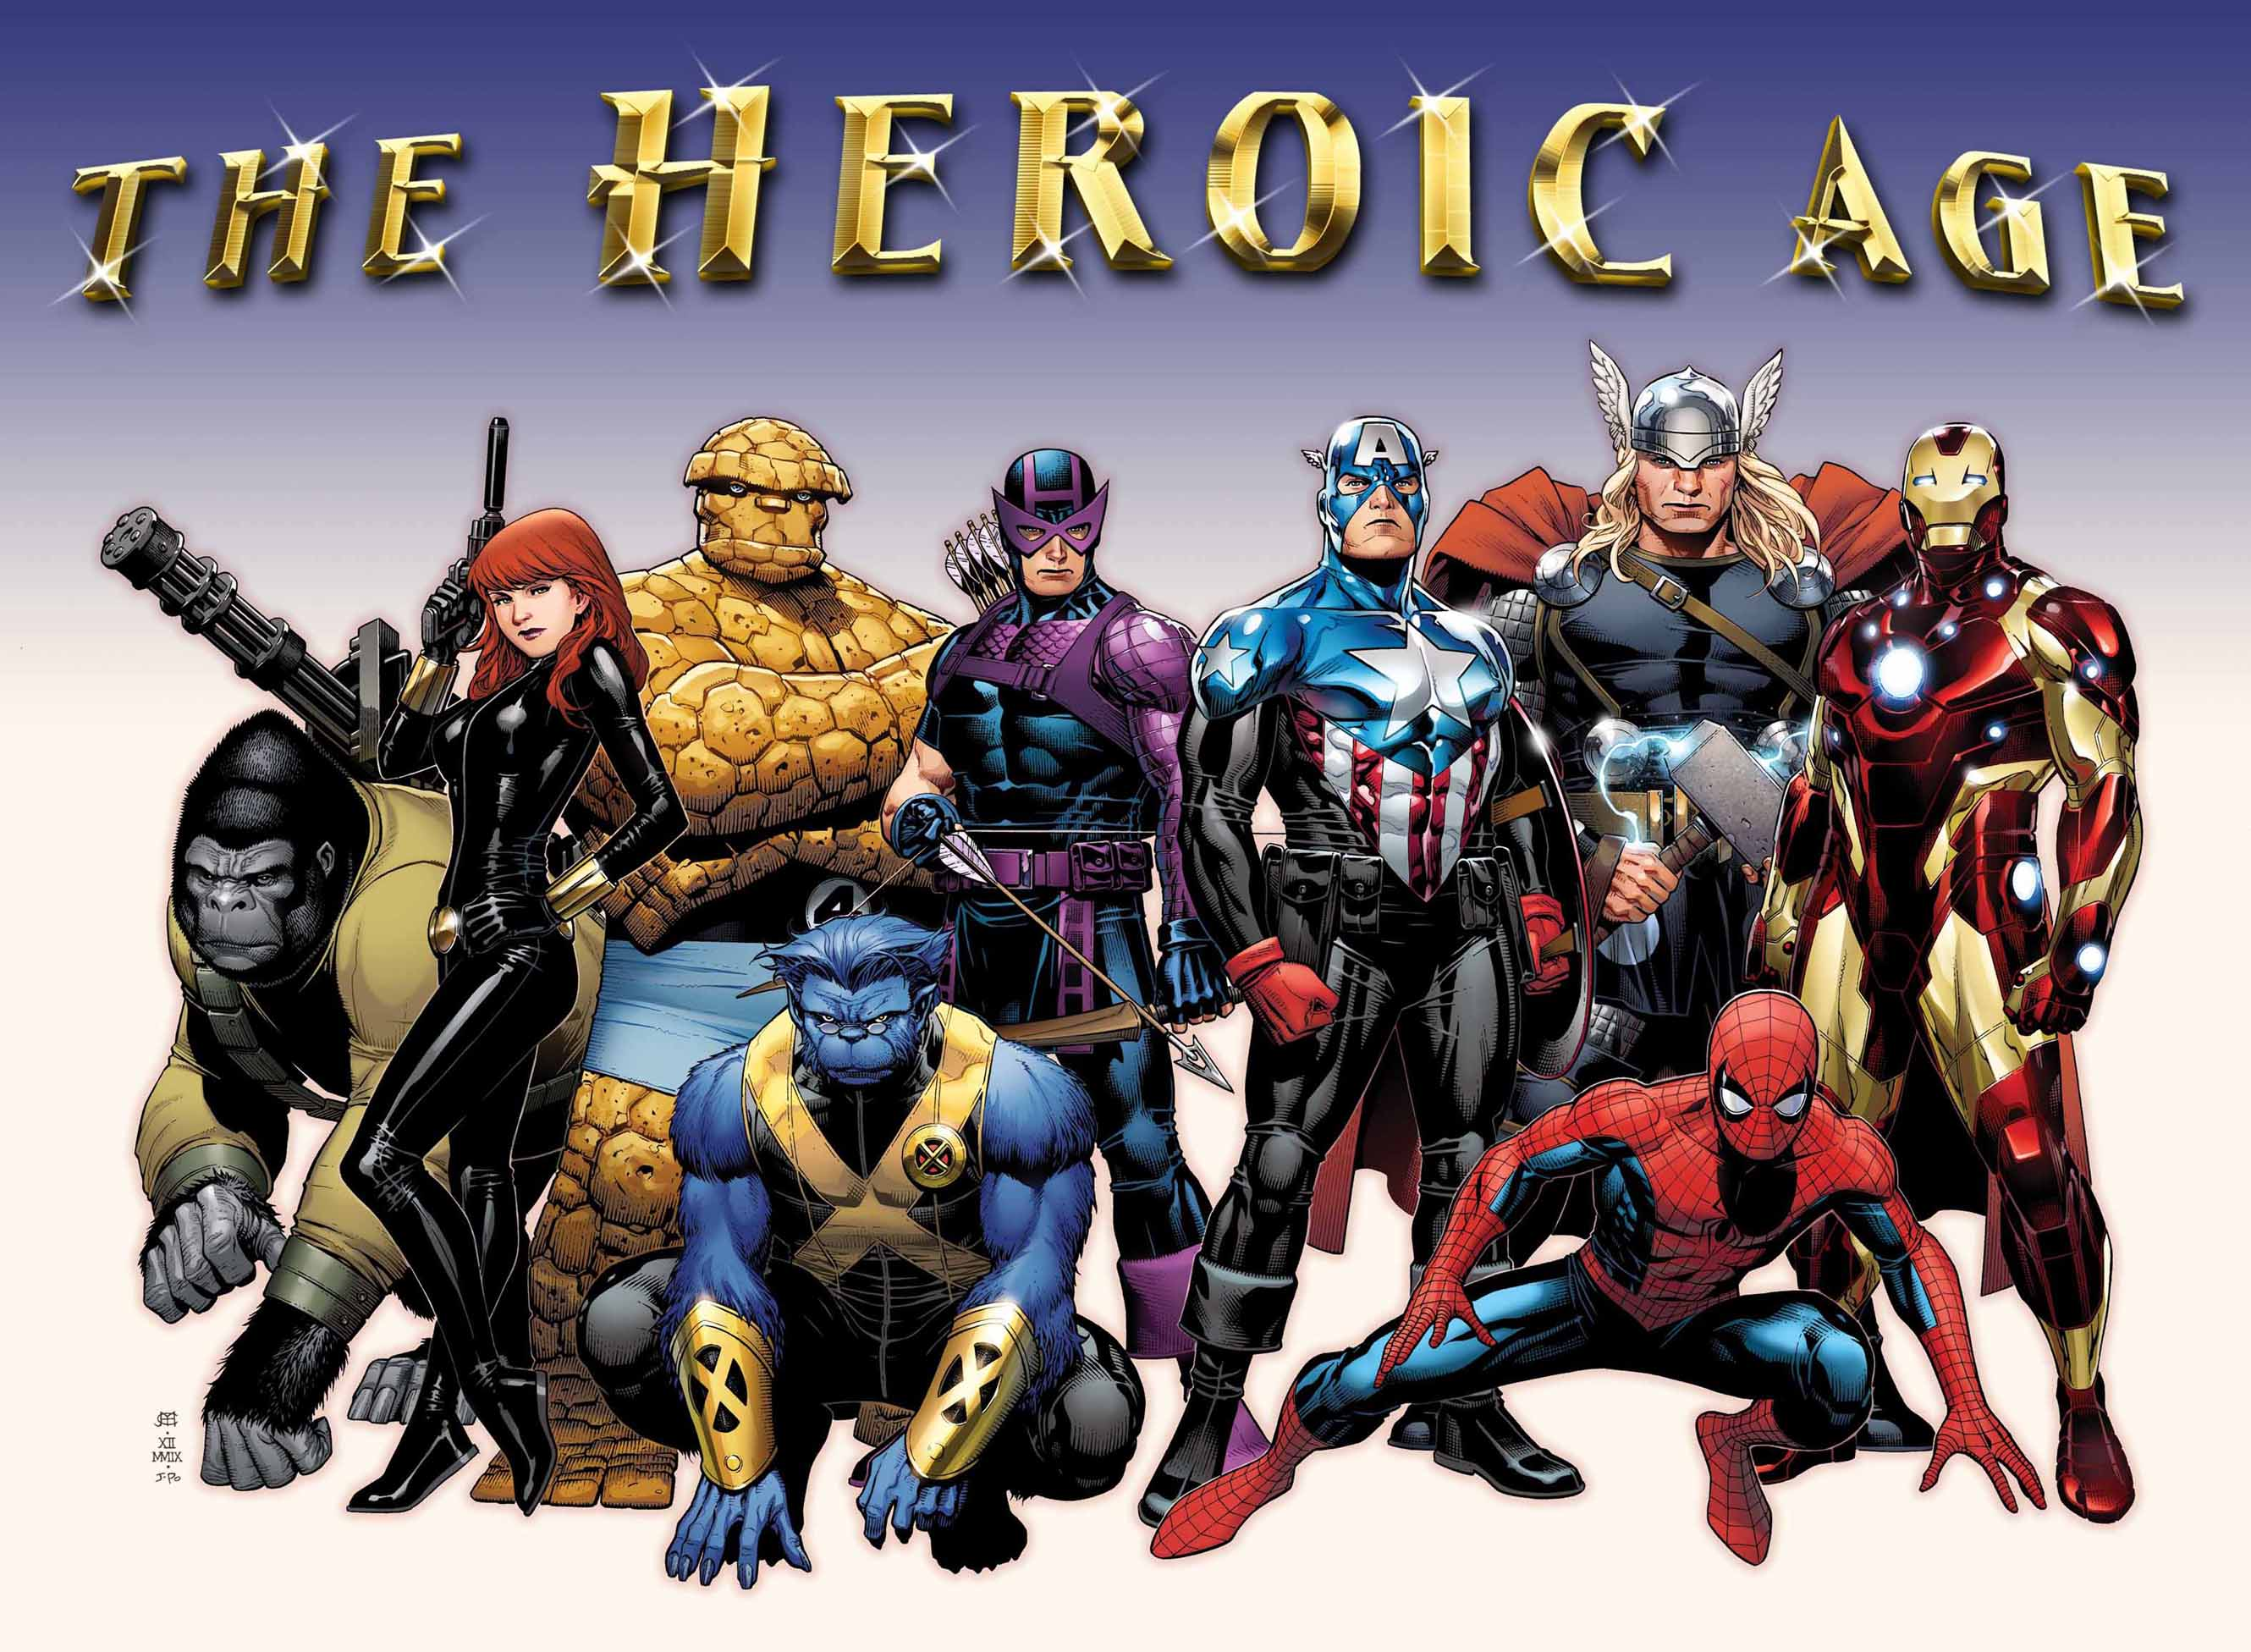 The new Avengers lineup?  And yes, Bucky is STILL Captain America.